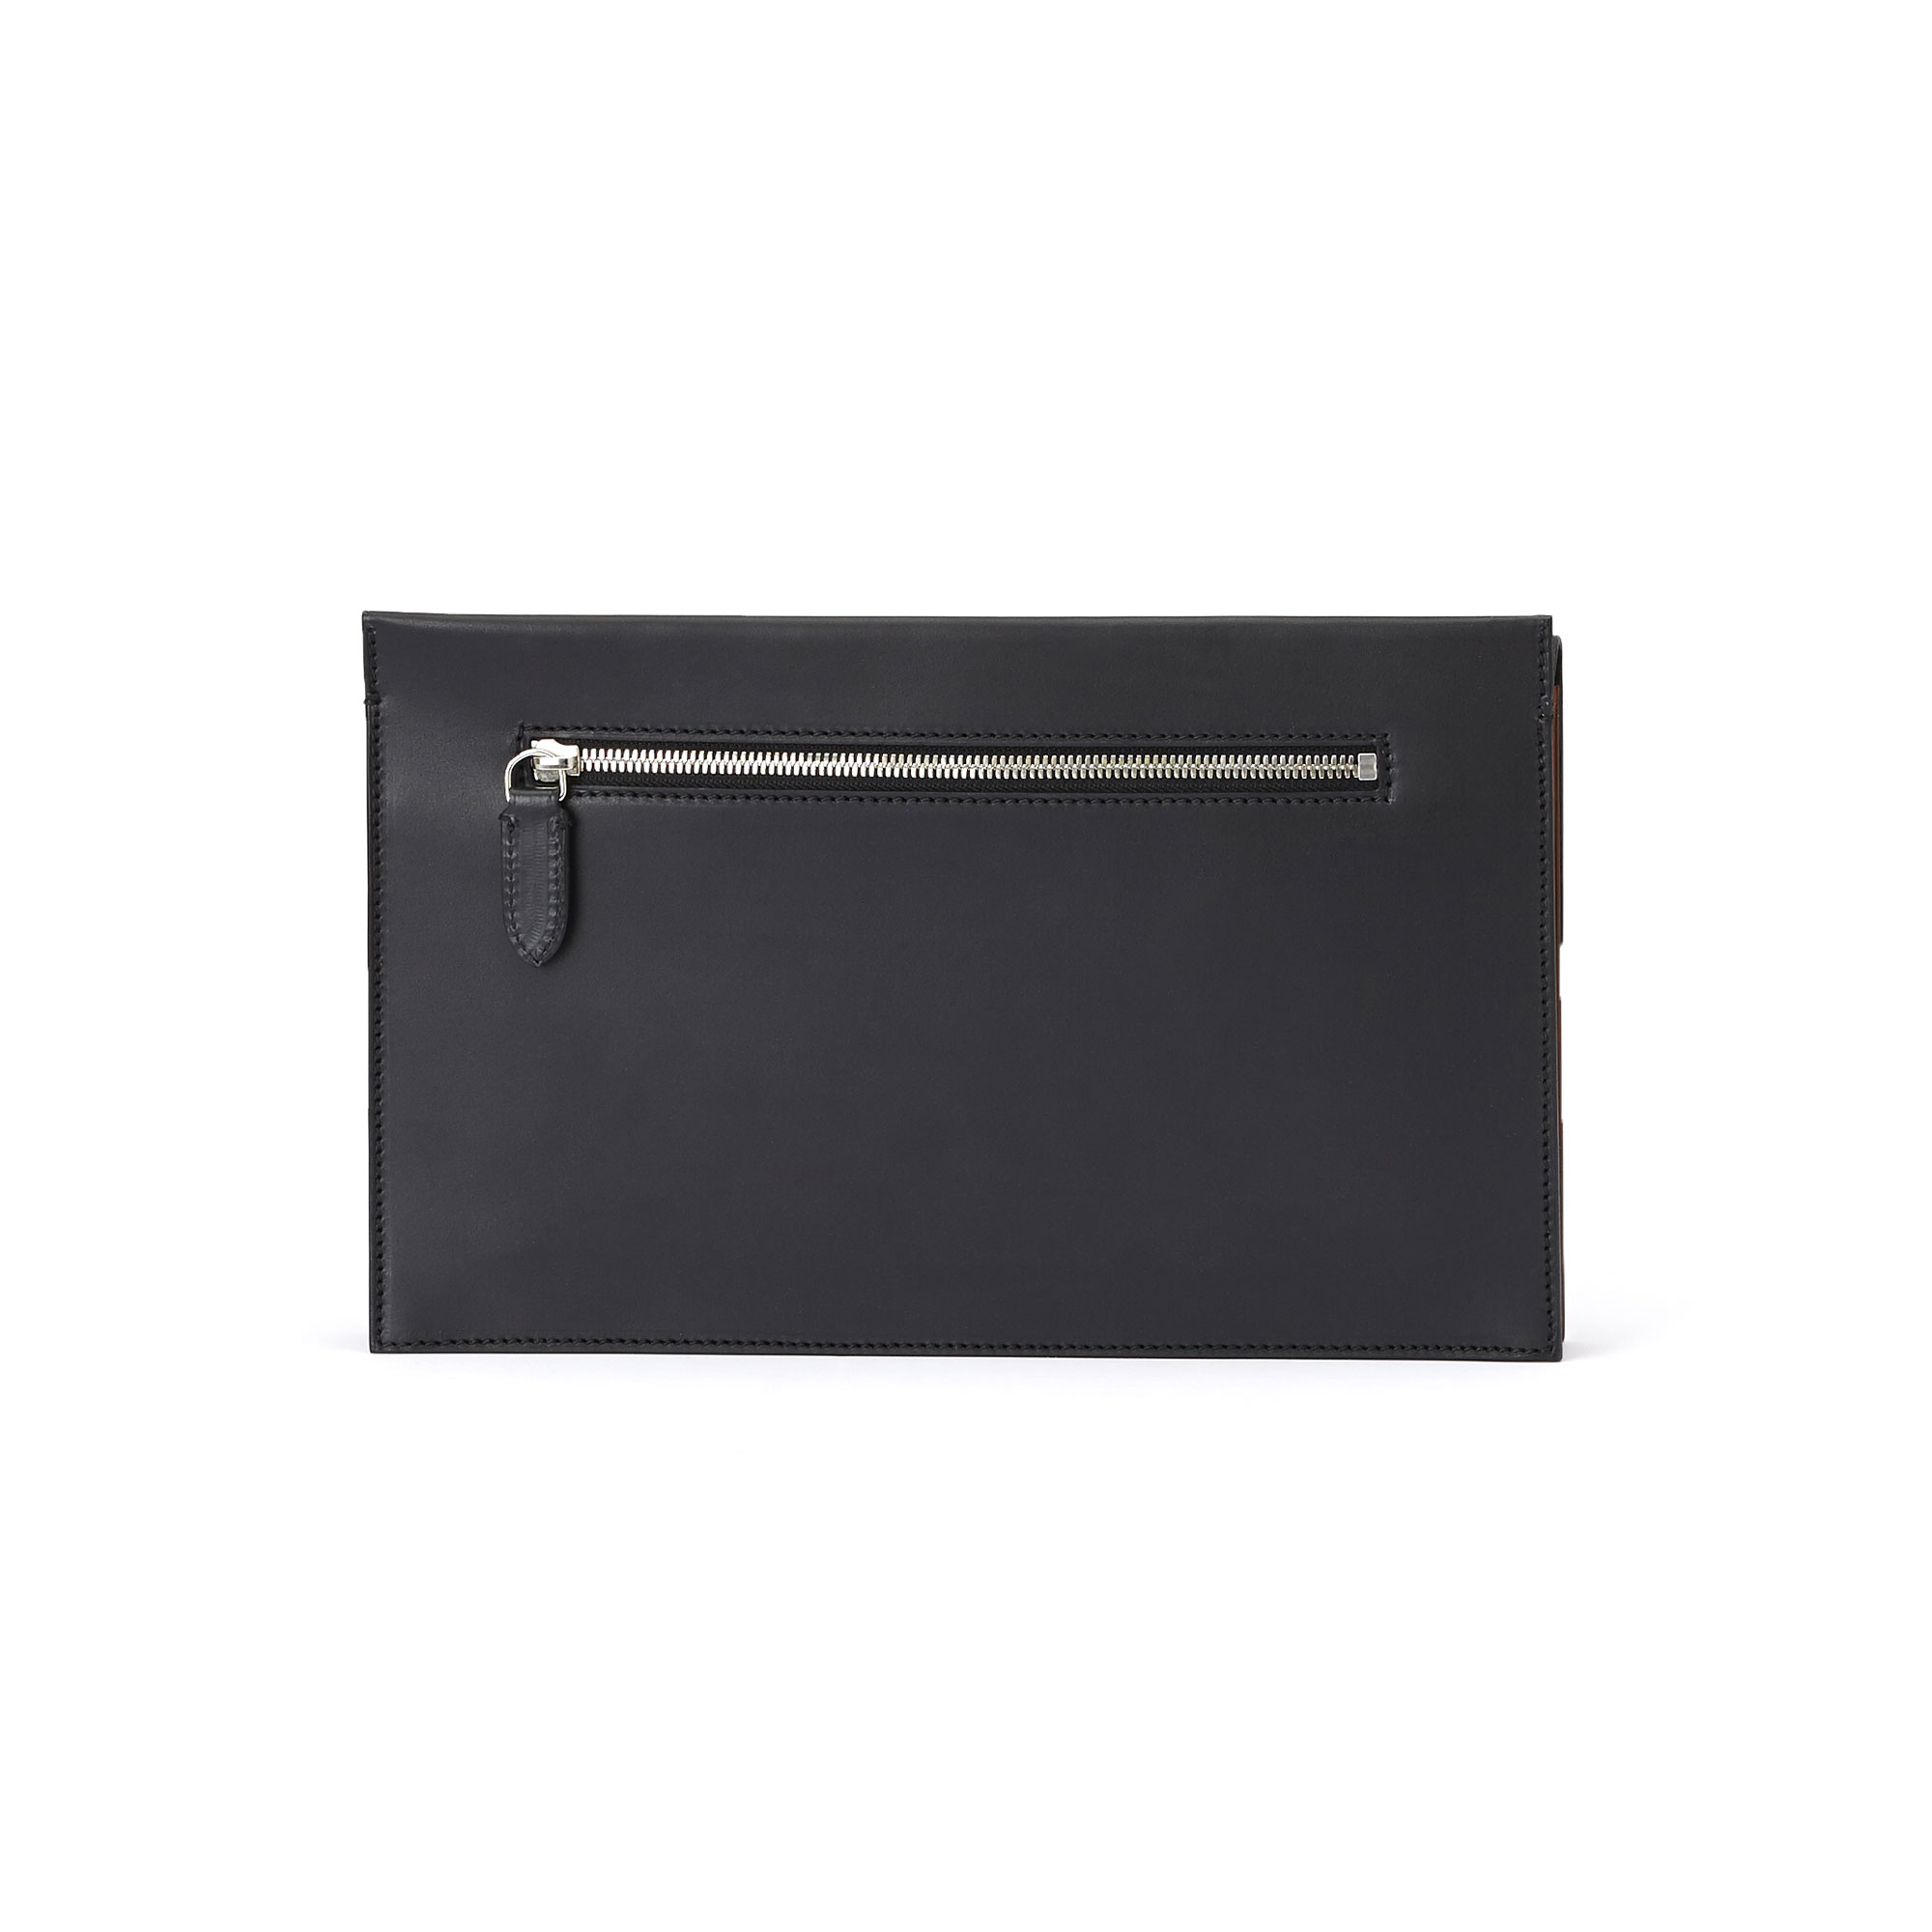 The black and terrabruciata french calf Dafne Clutch bag by Bertoni 1949 03